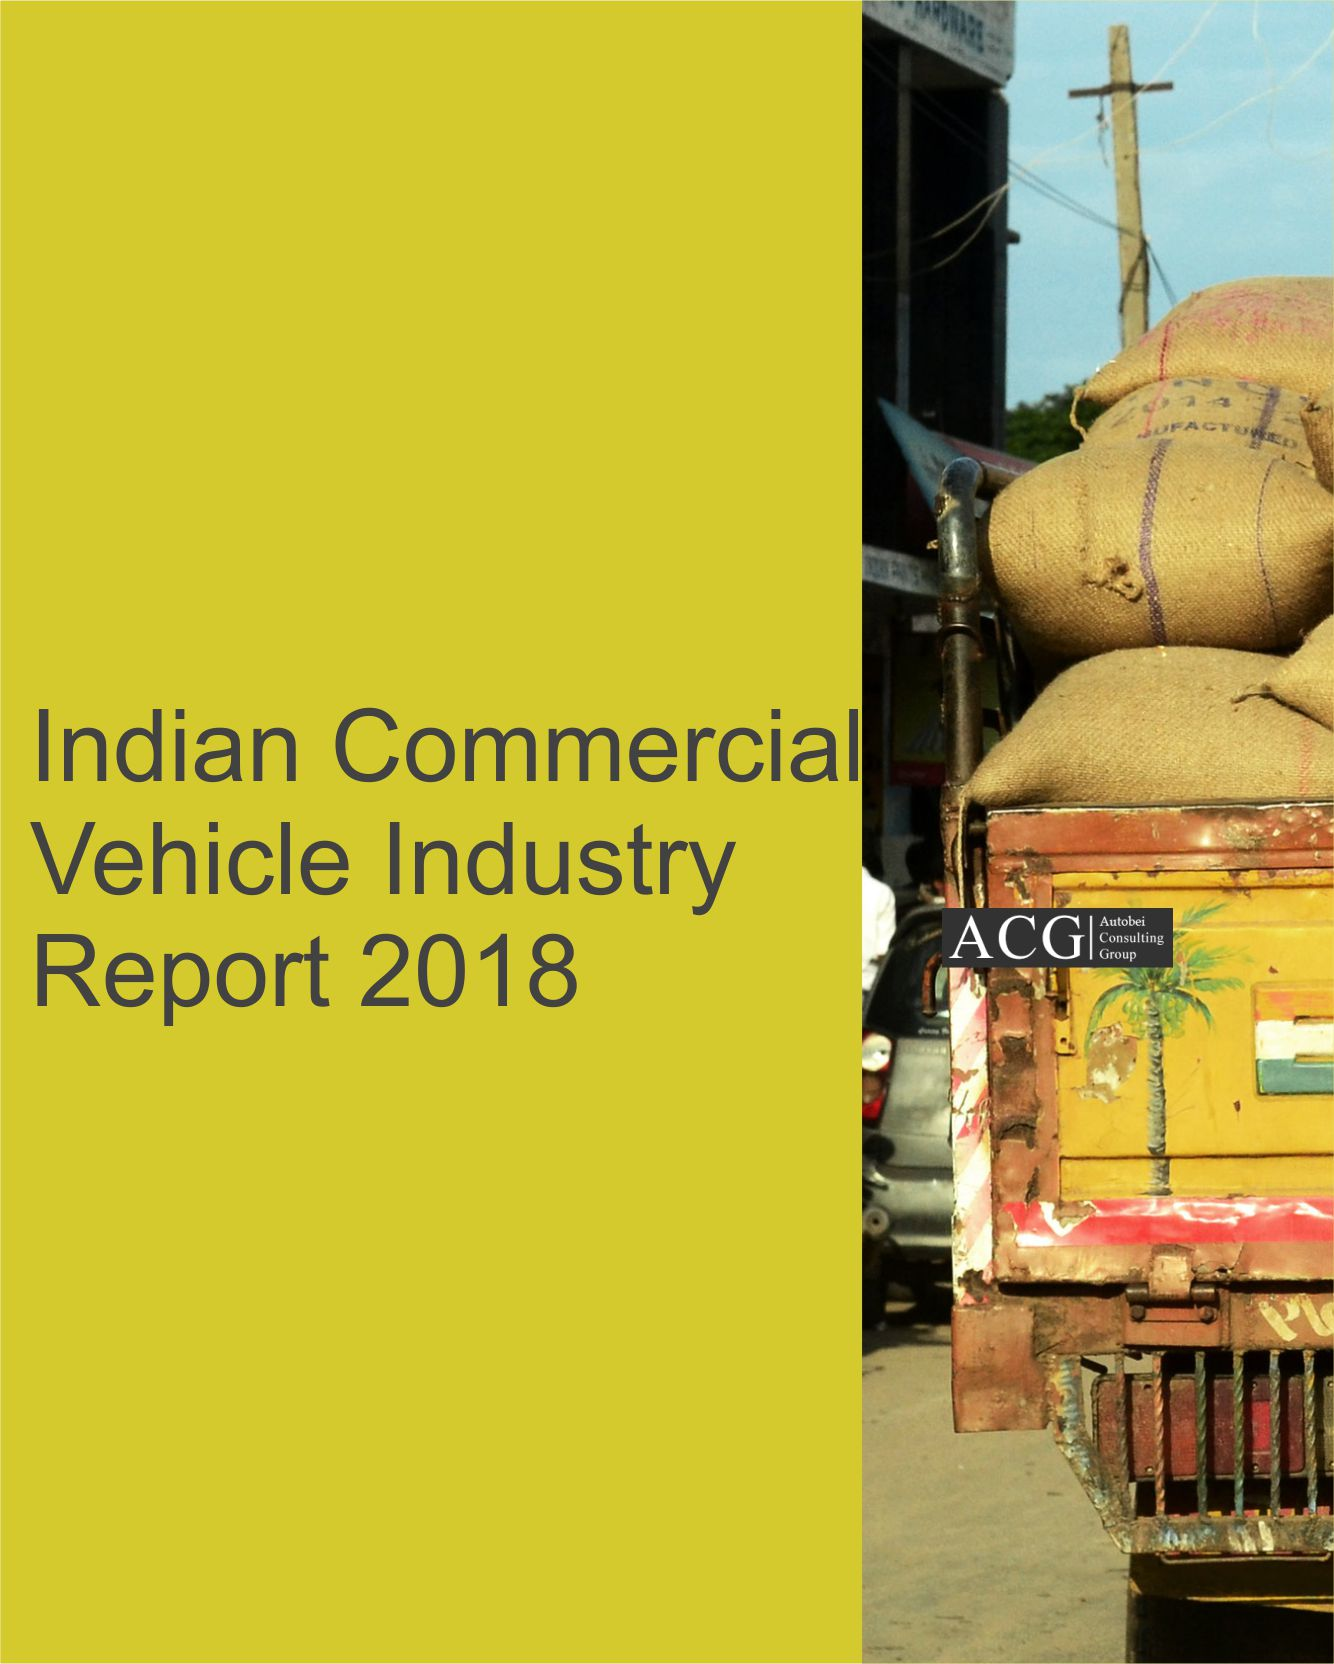 Indian Commercial Vehicle Industry Report 2018